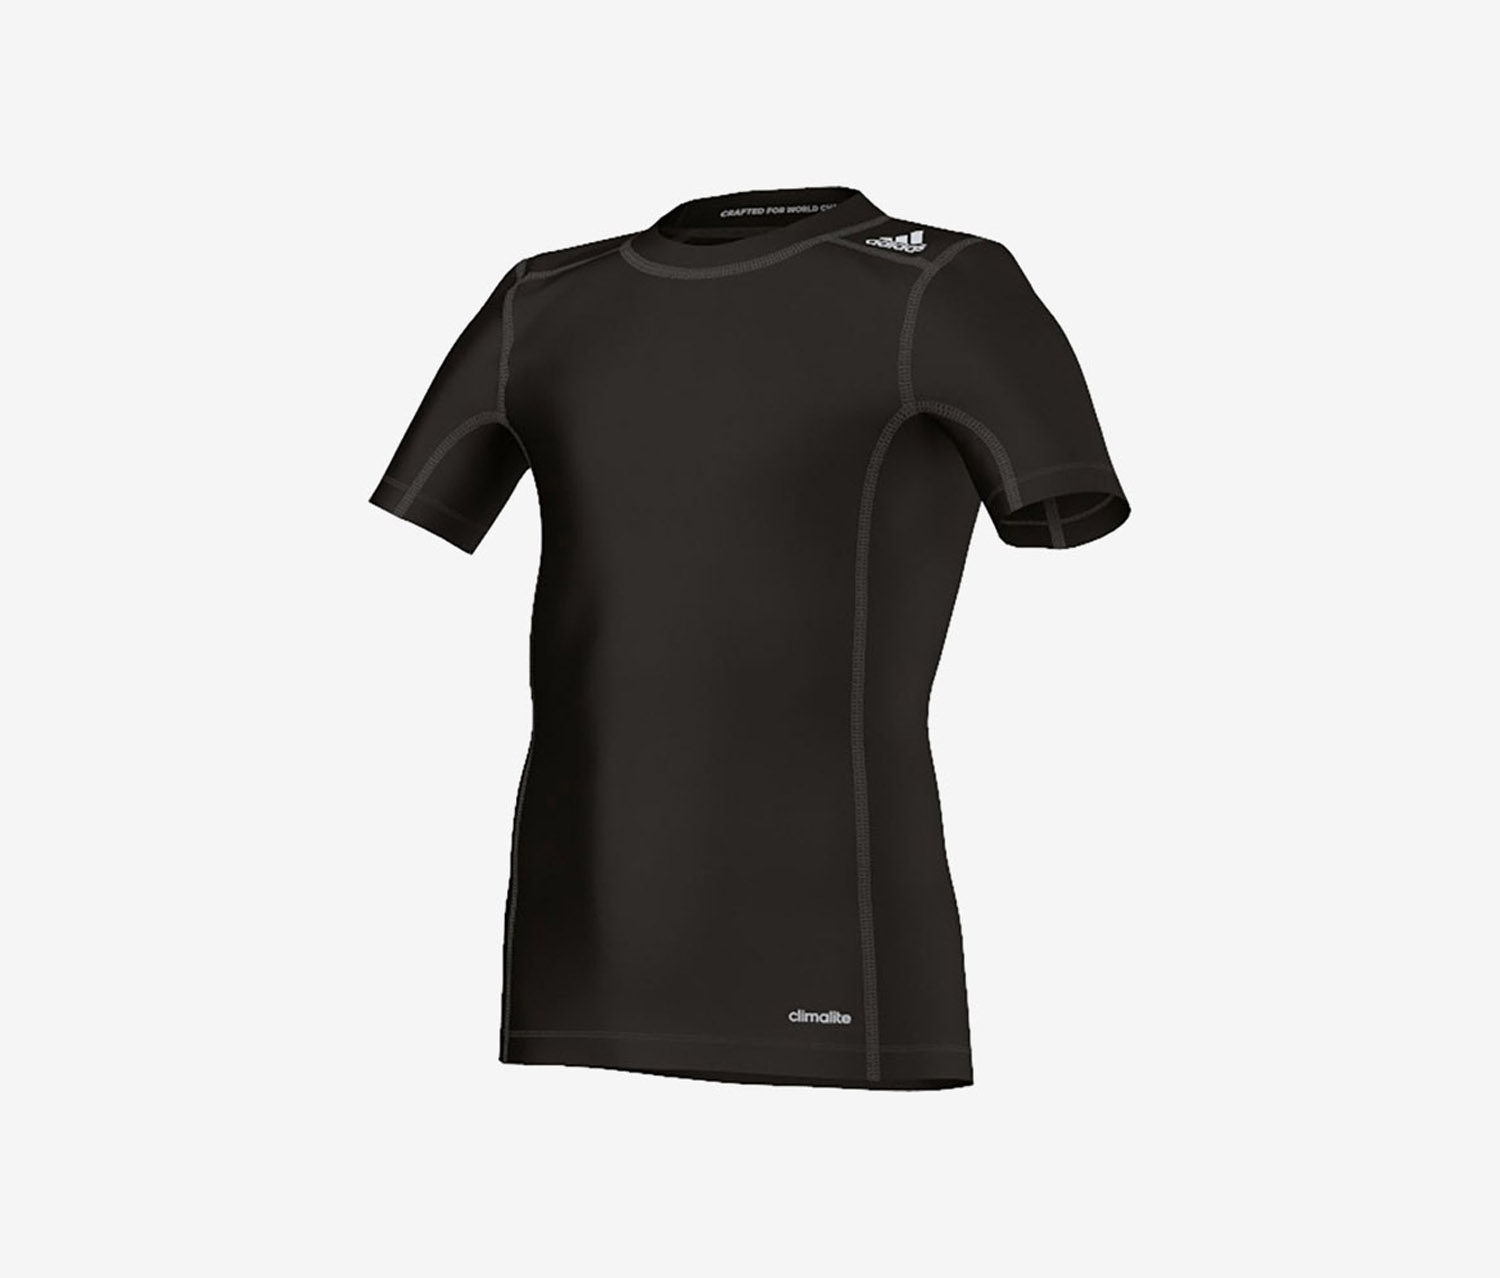 TechFit Base Shirt, Black